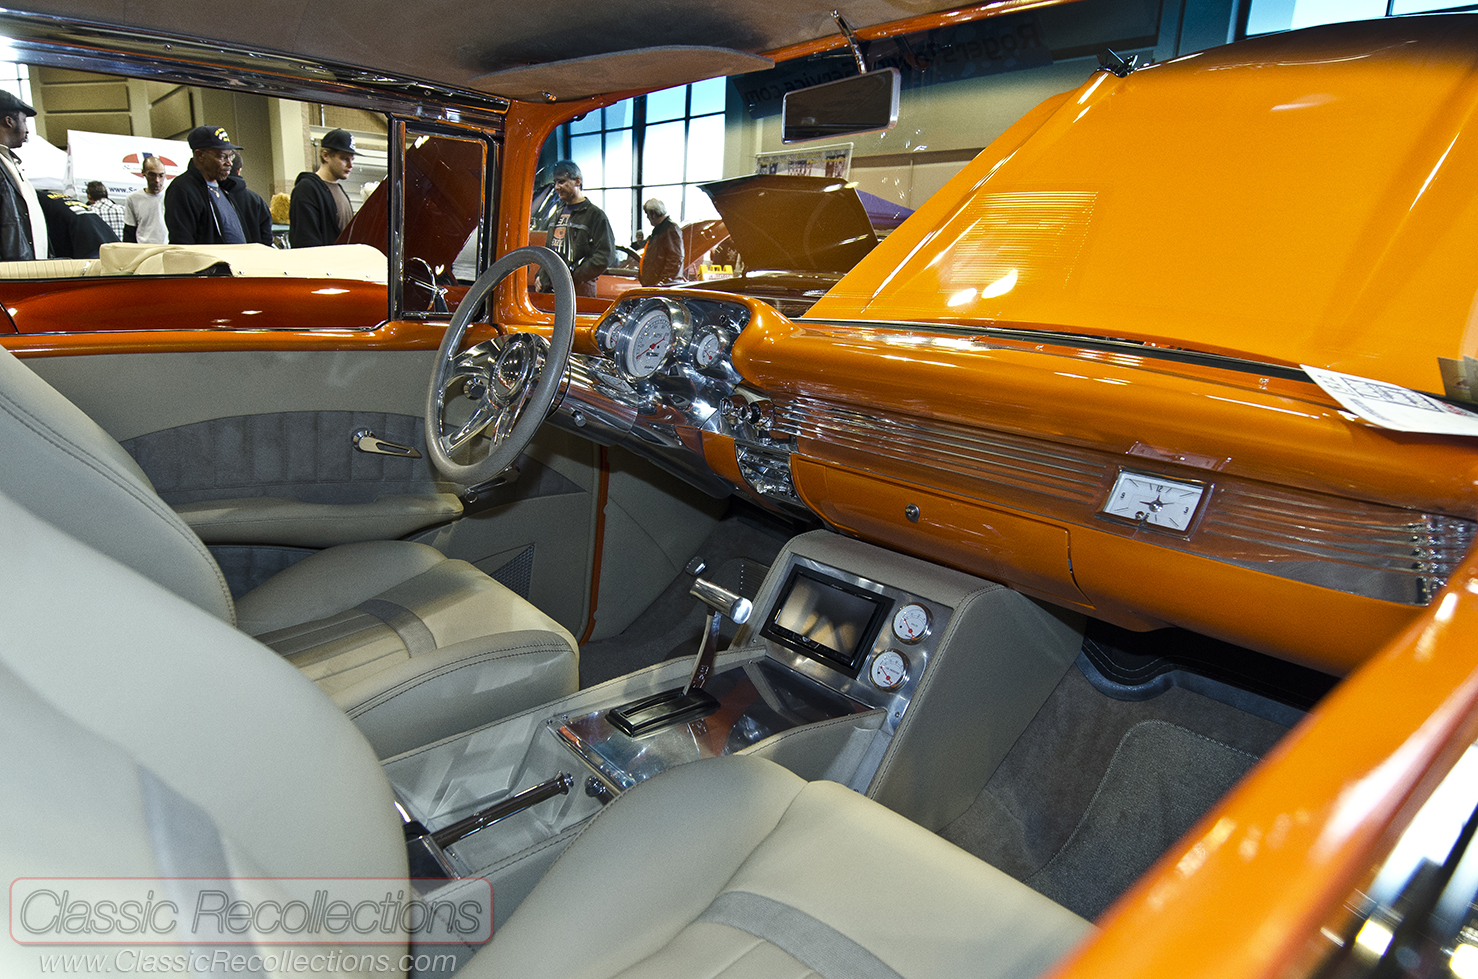 Crcse Show 1957 Chevrolet Bel Air Custom Classic Recollections Chevy This Was Displayed At The 2013 Rides Car And